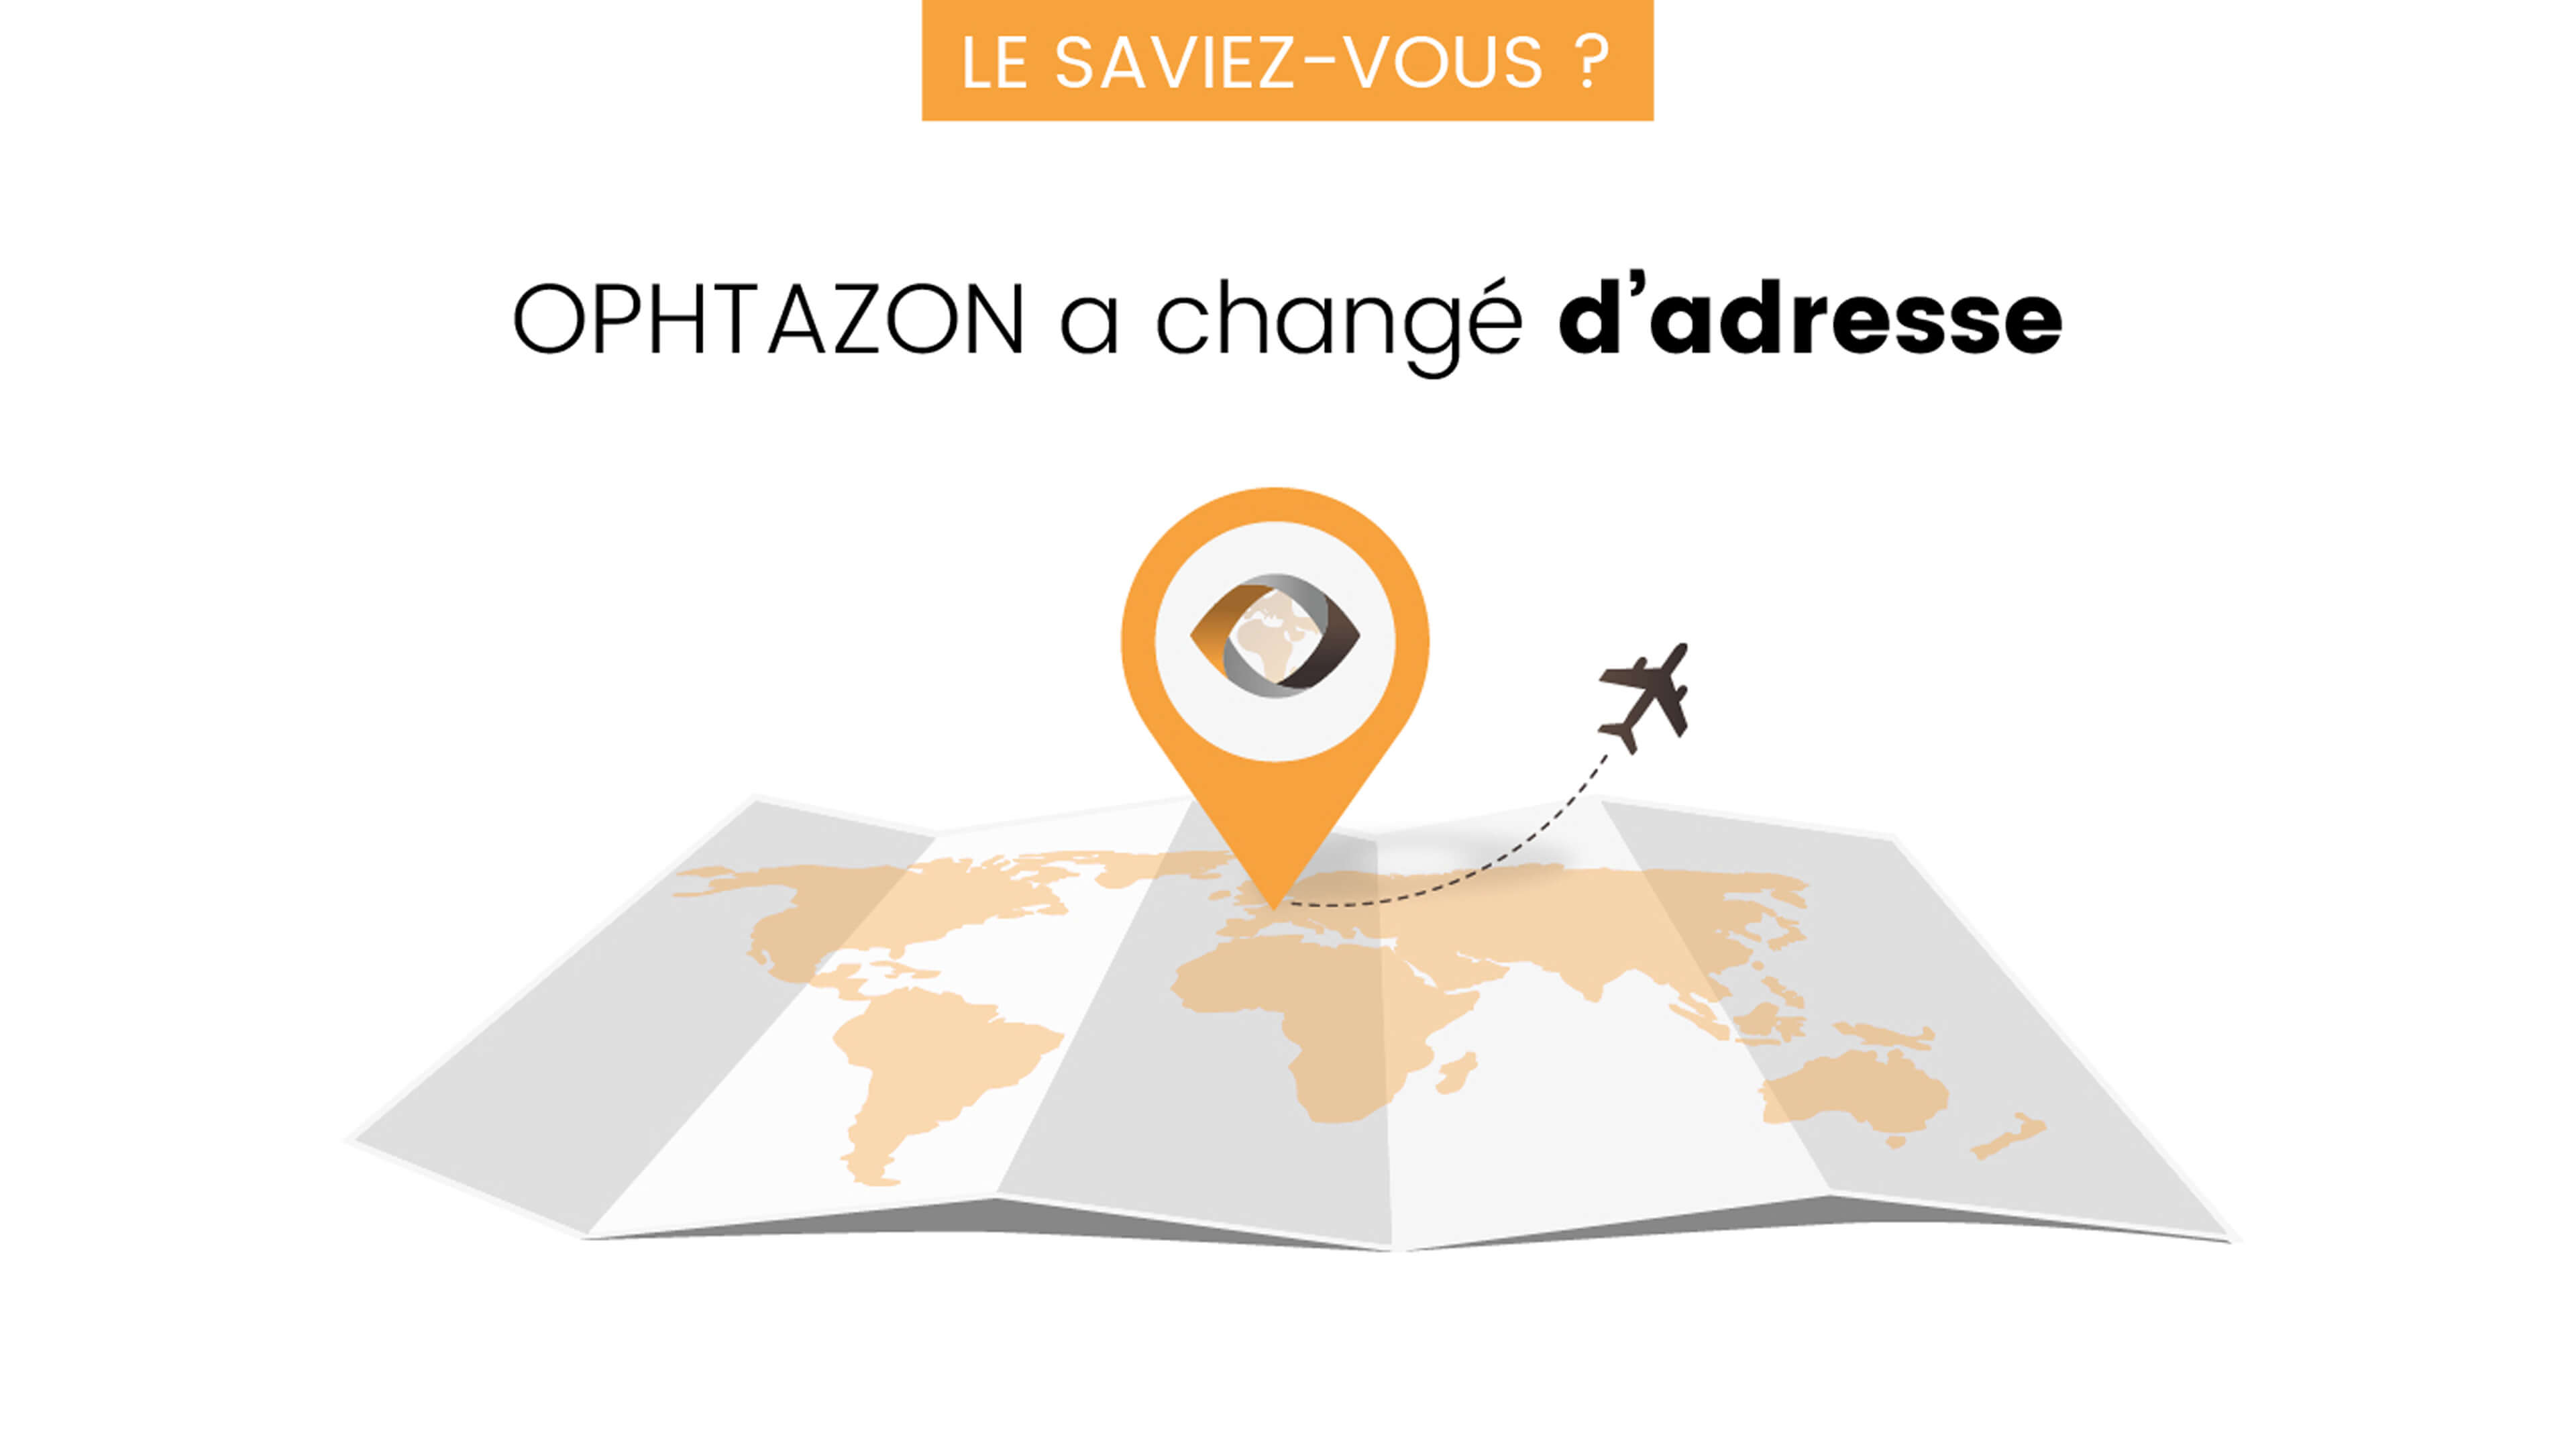 OPHTAZON a changé d'adresse